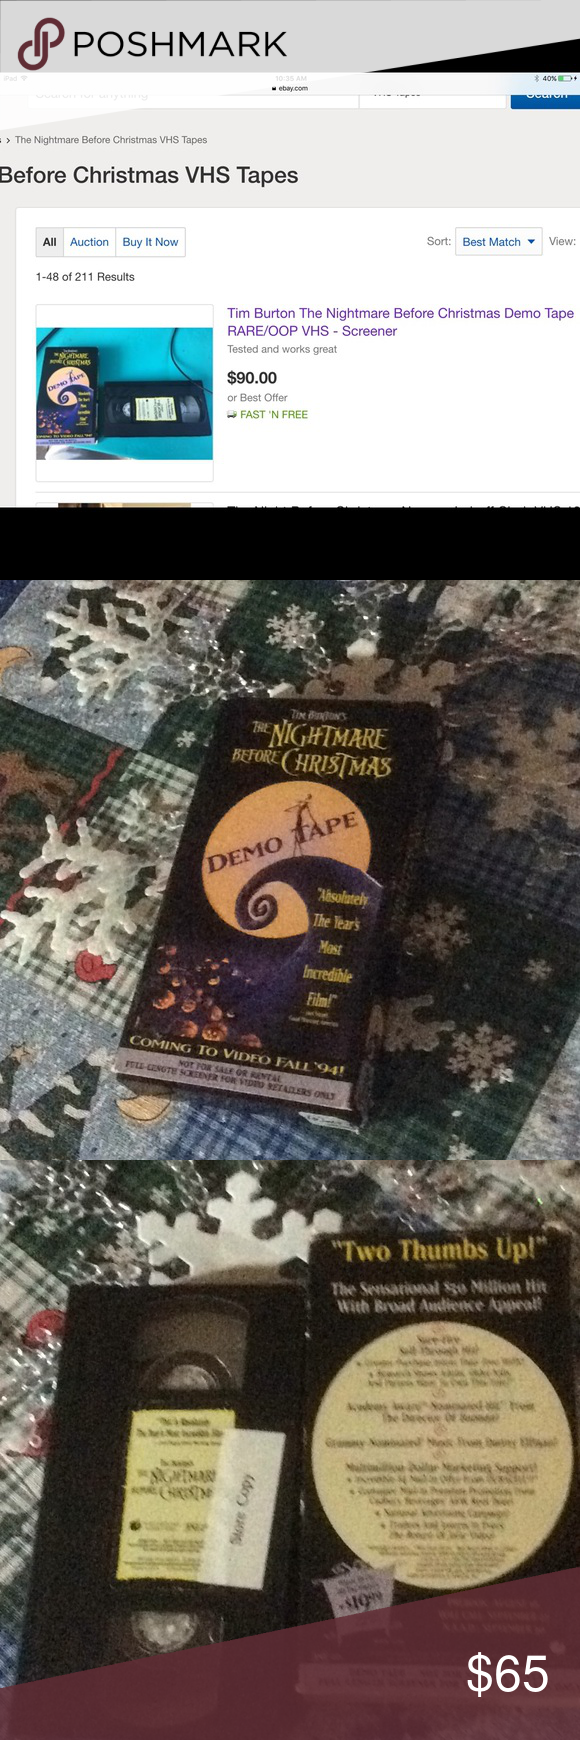 Rare The Nightmare Before Christmas VHS demo tape This is a ...